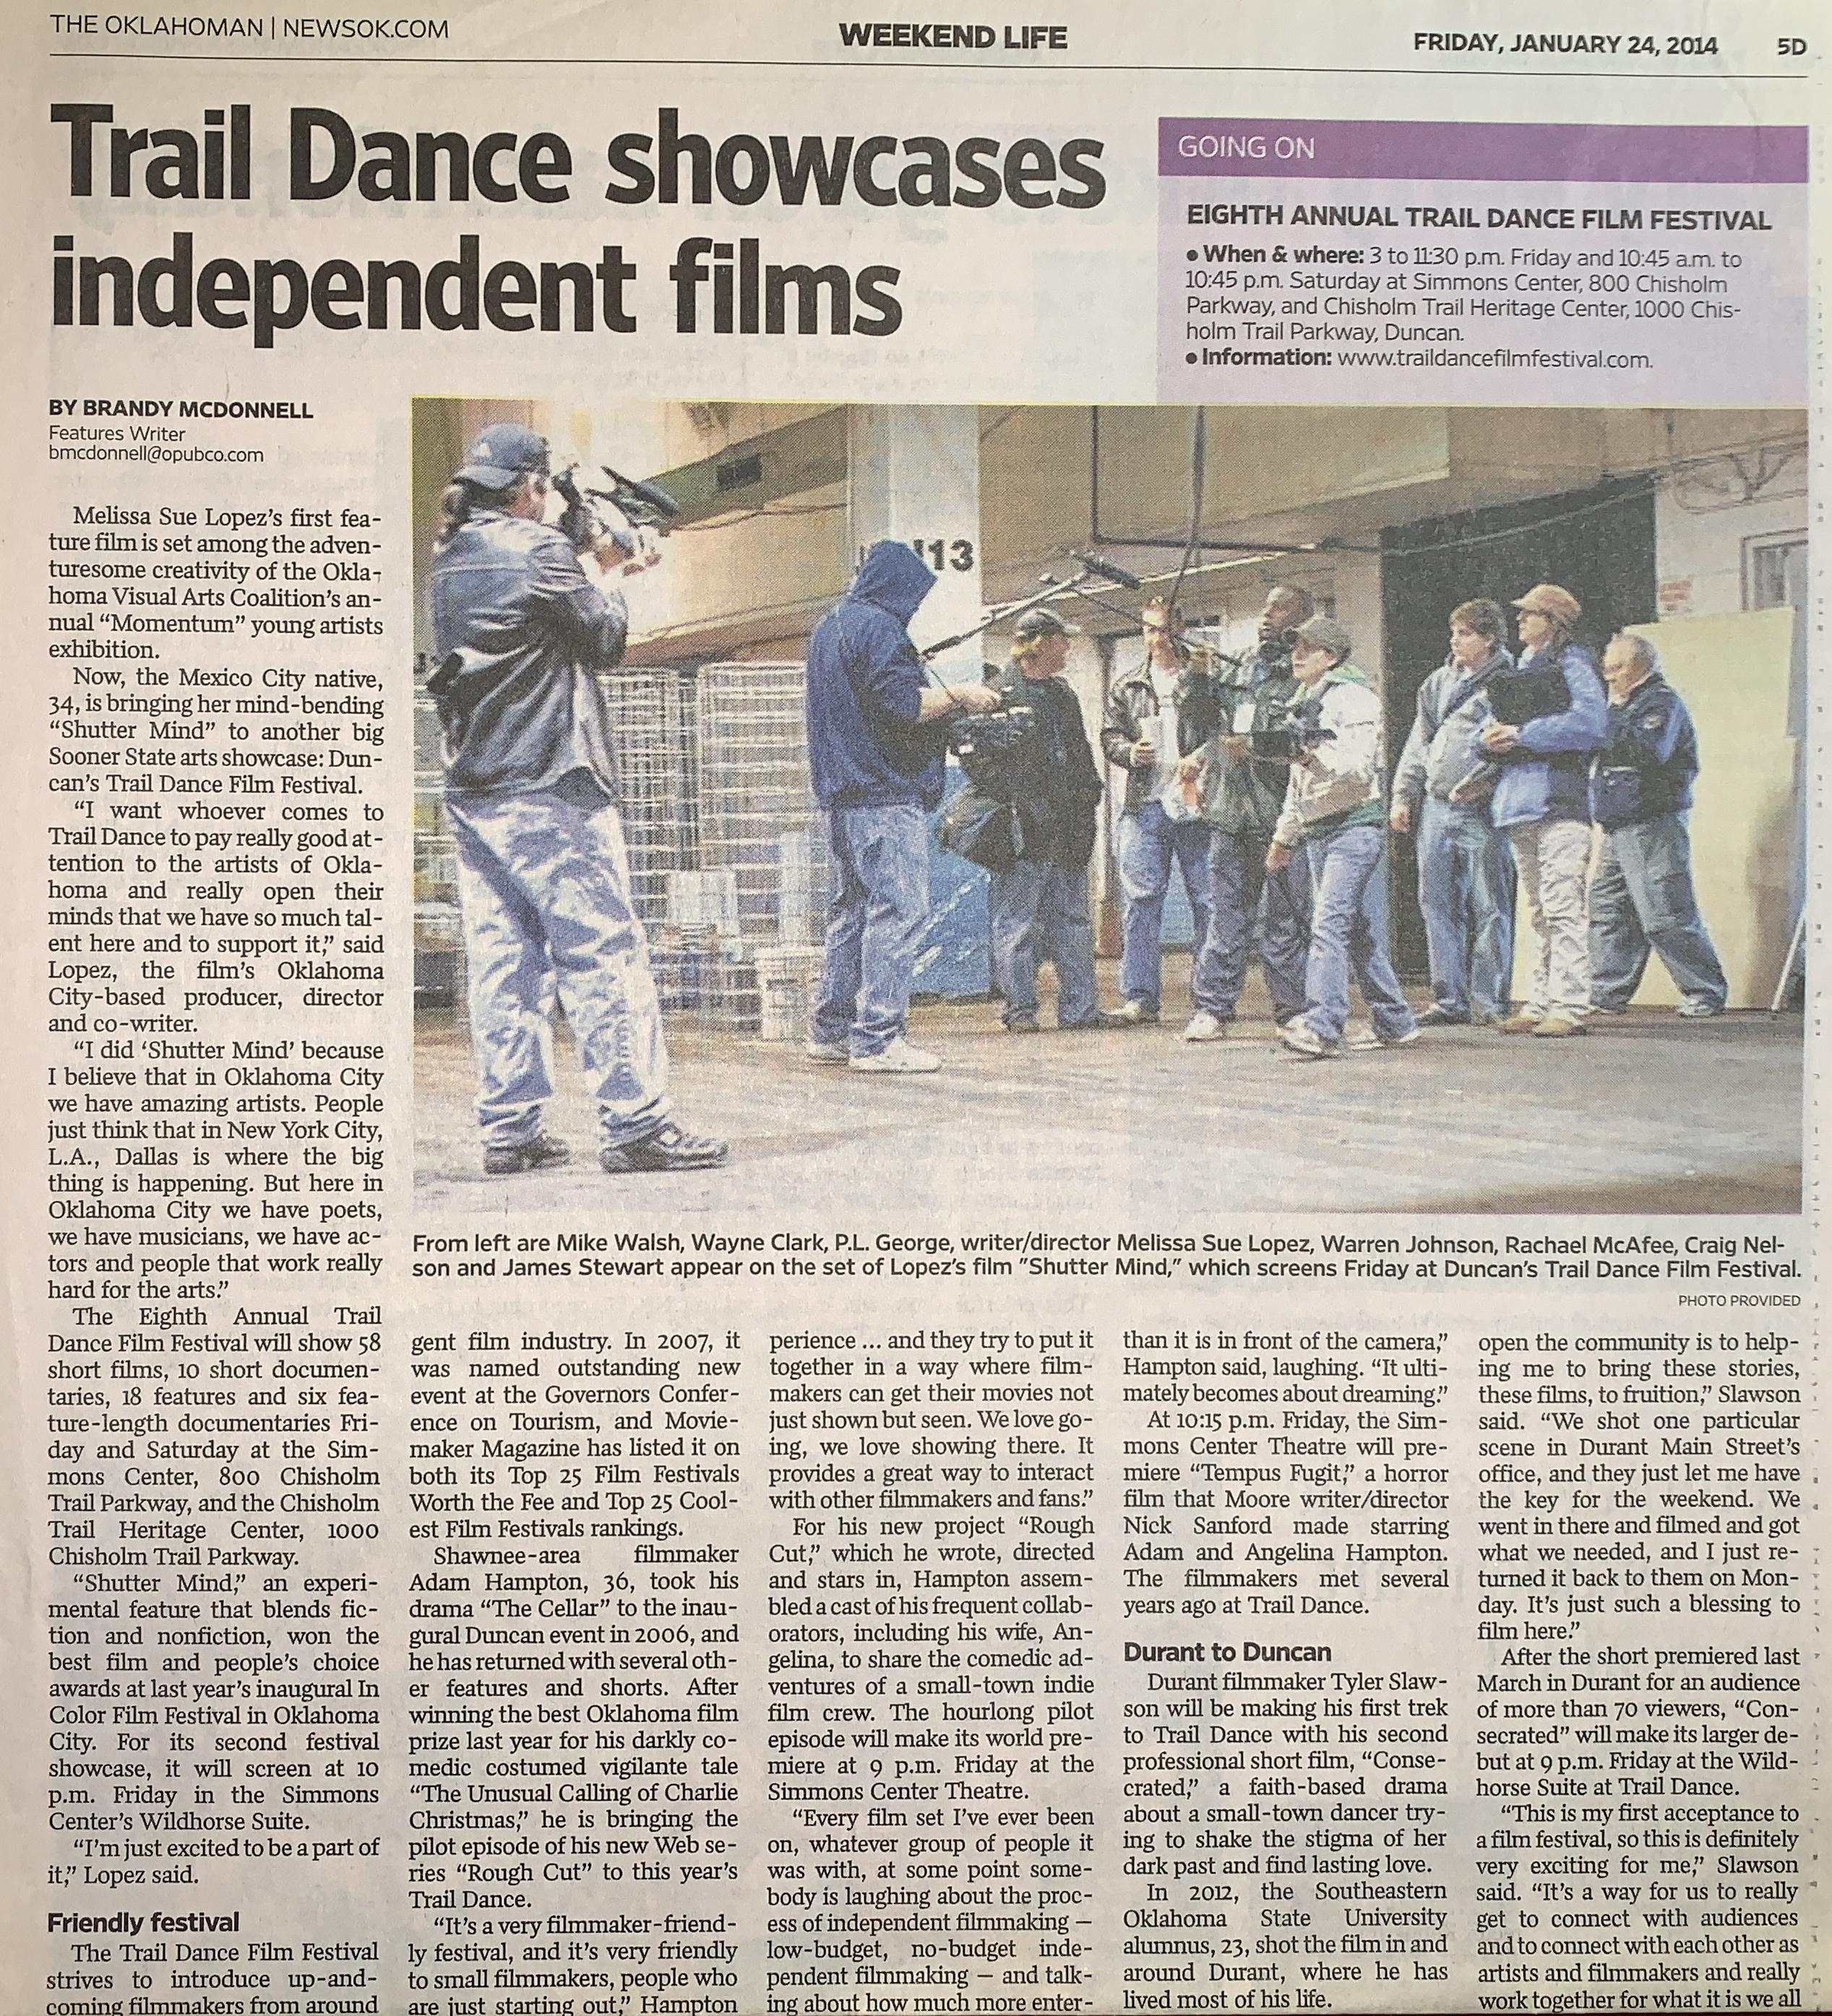 Article-TrailDance